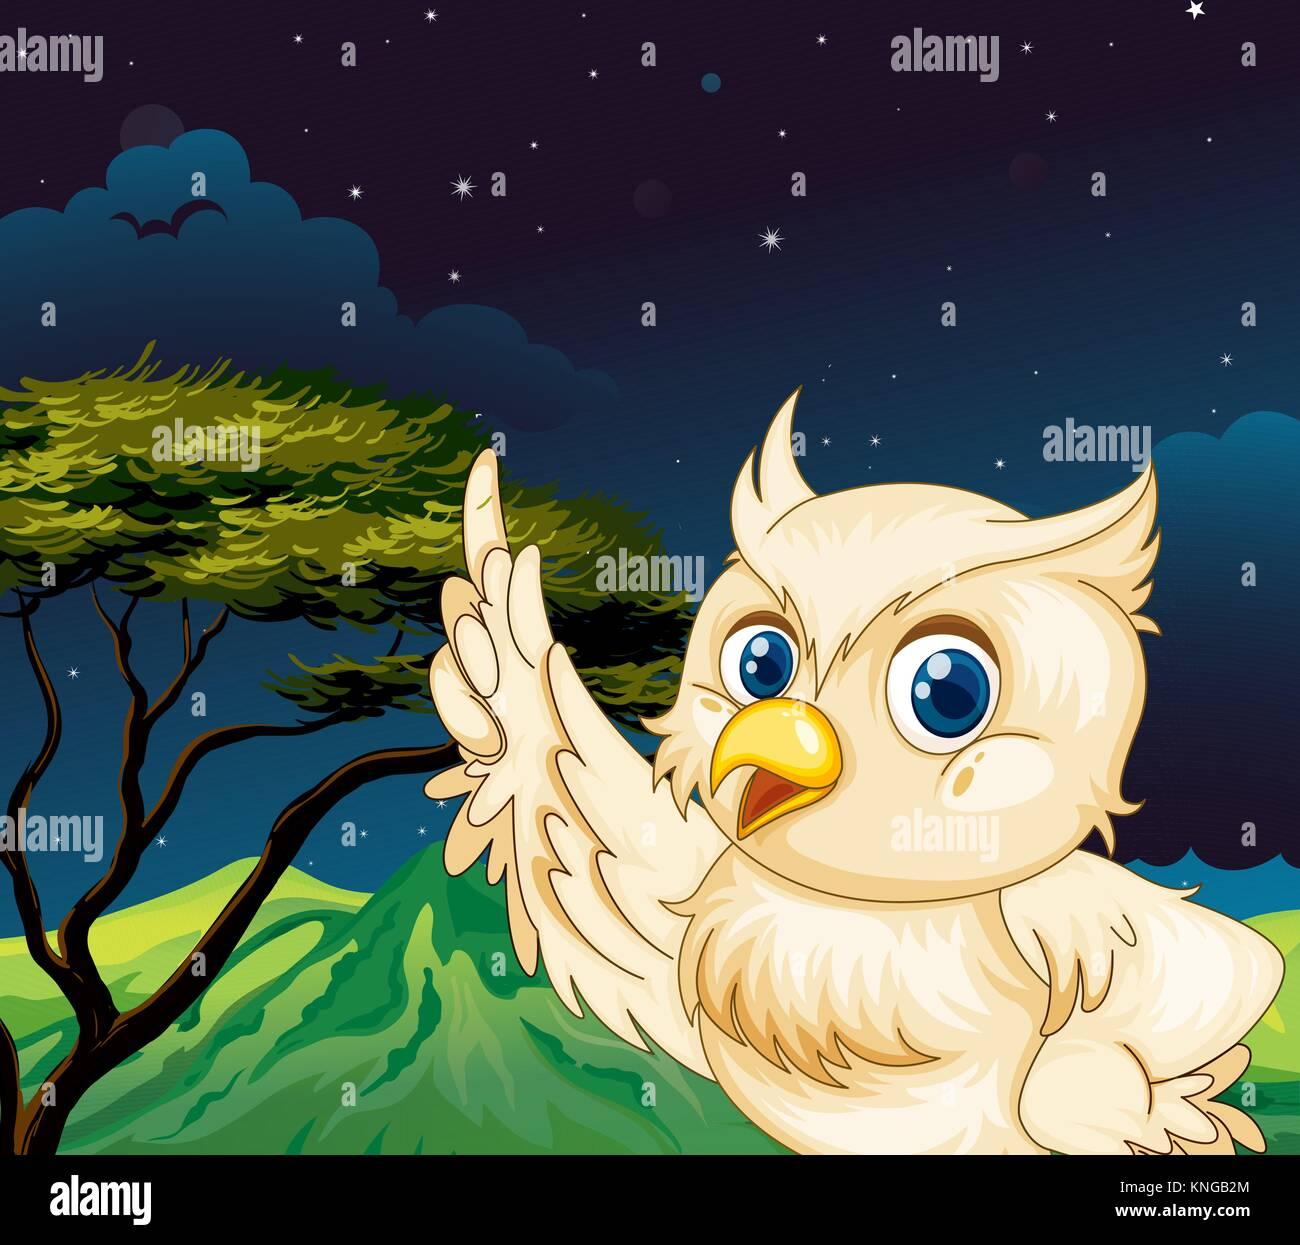 Stars In Your Eyes Stock Vector Images Alamy Flipper Owl Hearty Orange Illustration Of A Big The Jungle